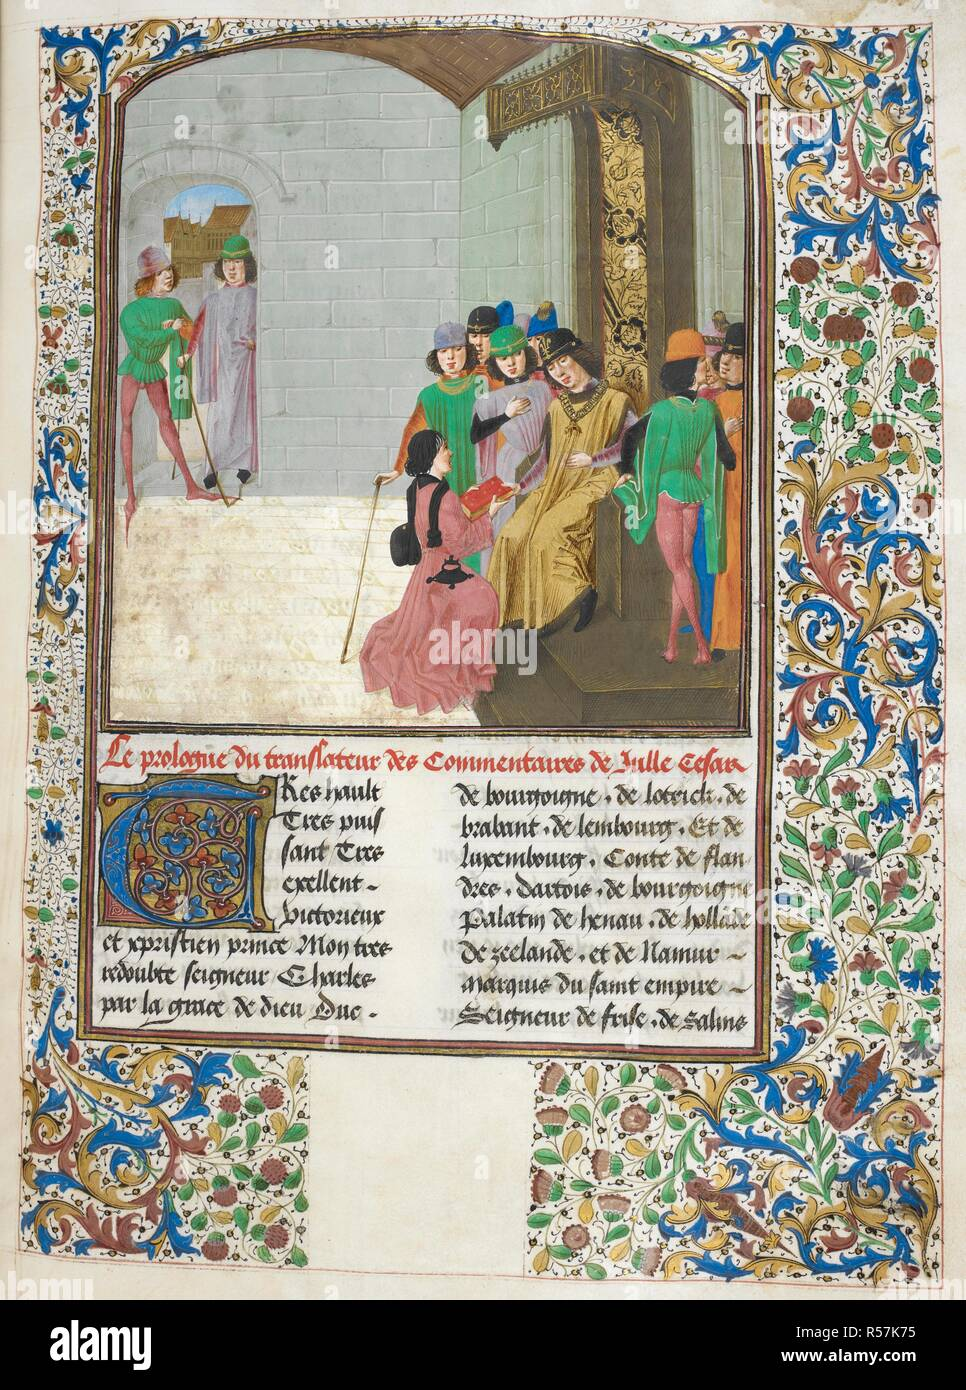 Charles the Bold, Duke of Burgundy, enthroned, dressed in gold and wearing the chain of the Order of the Golden Fleece, receiving a book from the translator of the Commentaries,  Jan Du Quesne, who kneels before him. Caesar, translated by Jan Du Quesne (or Jean Duchesne), Bellum Gallicum ( Les commentaires de Cesar ). 1473-1476. Source: Royal 16 G. VIII, f.14. Language: French. Author: JULIUS CAESAR. Du Quesne, Jehan. - Stock Image